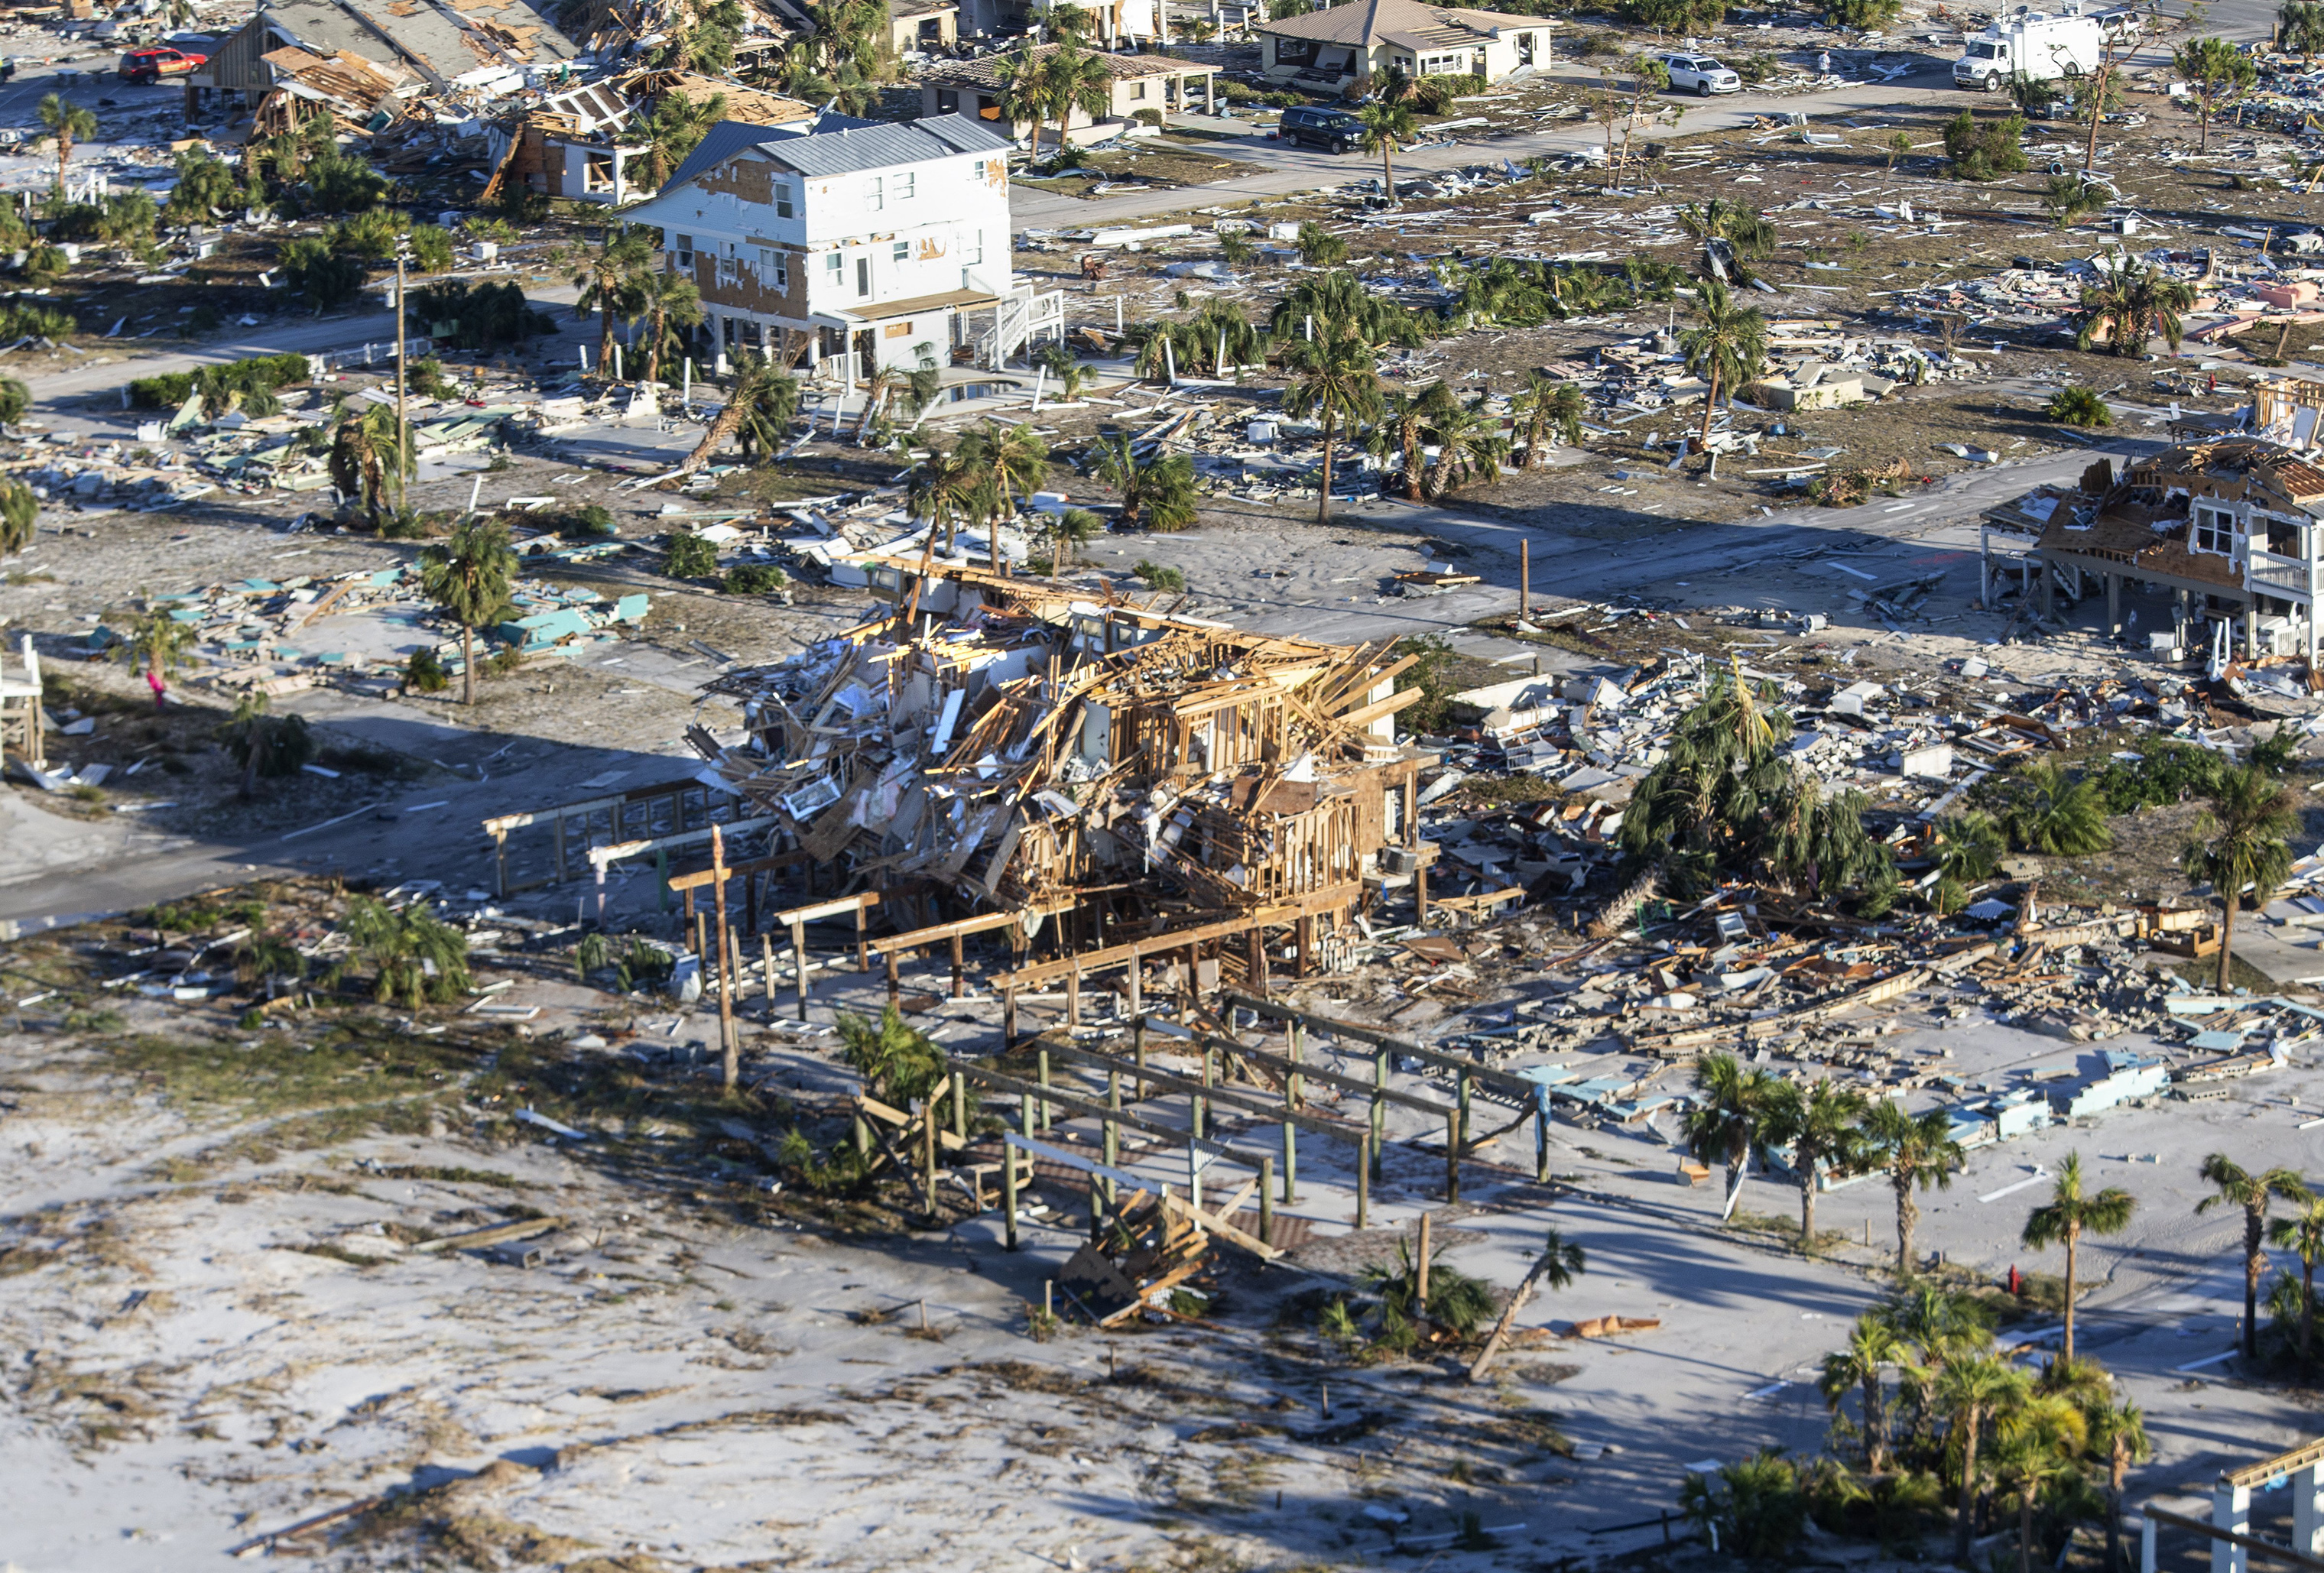 Homes and businesses along U.S. 98 are left in devastation by Hurricane Michael on Oct. 12, 2018 in Mexico Beach, Fla.